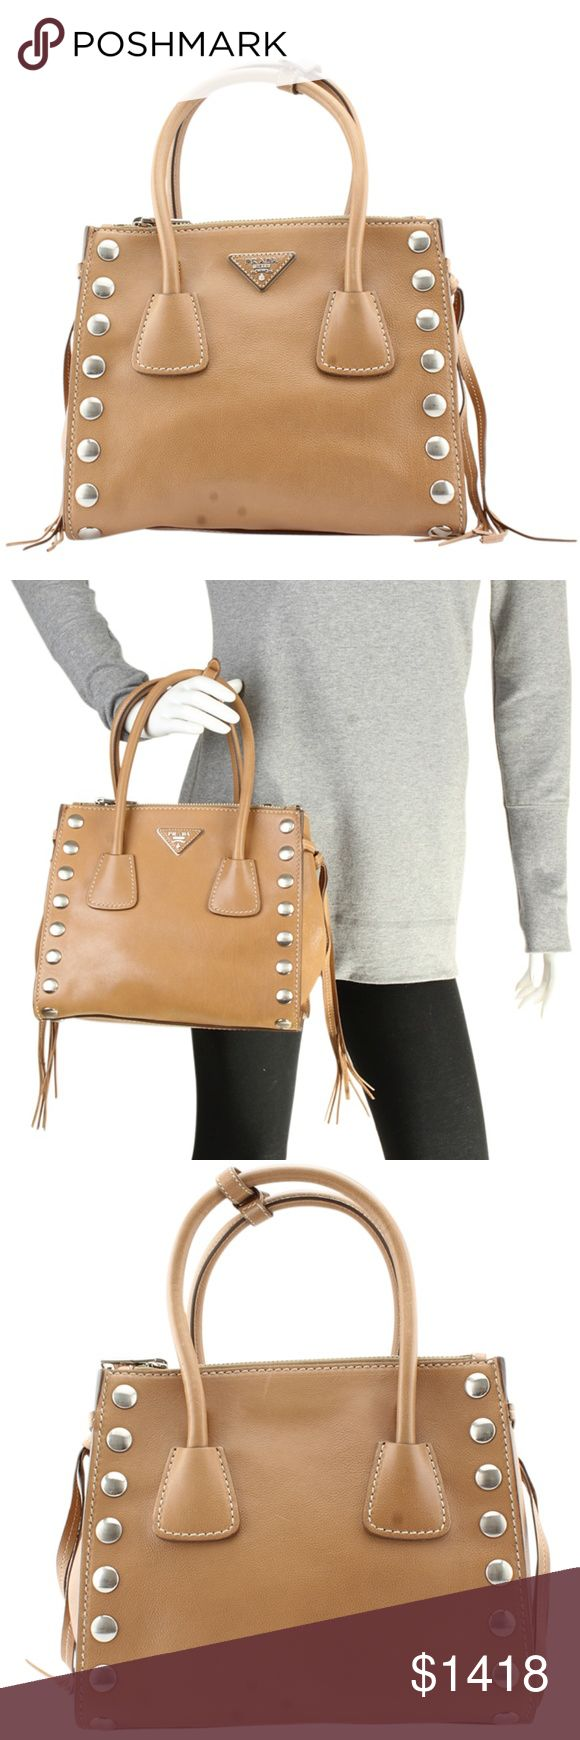 """Prada B2625R Tan Leather Satchel (117687) This Prada satchel is new without tags. •Exterior Condition: New •Interior Condition: New •Type: Satchel •Material: Leather •Origin: Italy •Interior Lining: Nylon •Hardware: Silver-Tone •Meas (L x W x H): 10.5x6.5x9 •Strap Drop: 20"""" •Handle Drop: 9"""" •Exterior Pockets: 0 •Interior Pockets: 5 •Odor: None •Age Group: Adult •Weight: 2.675 lbs •Production Code: 231 Prada Bags Satchels"""